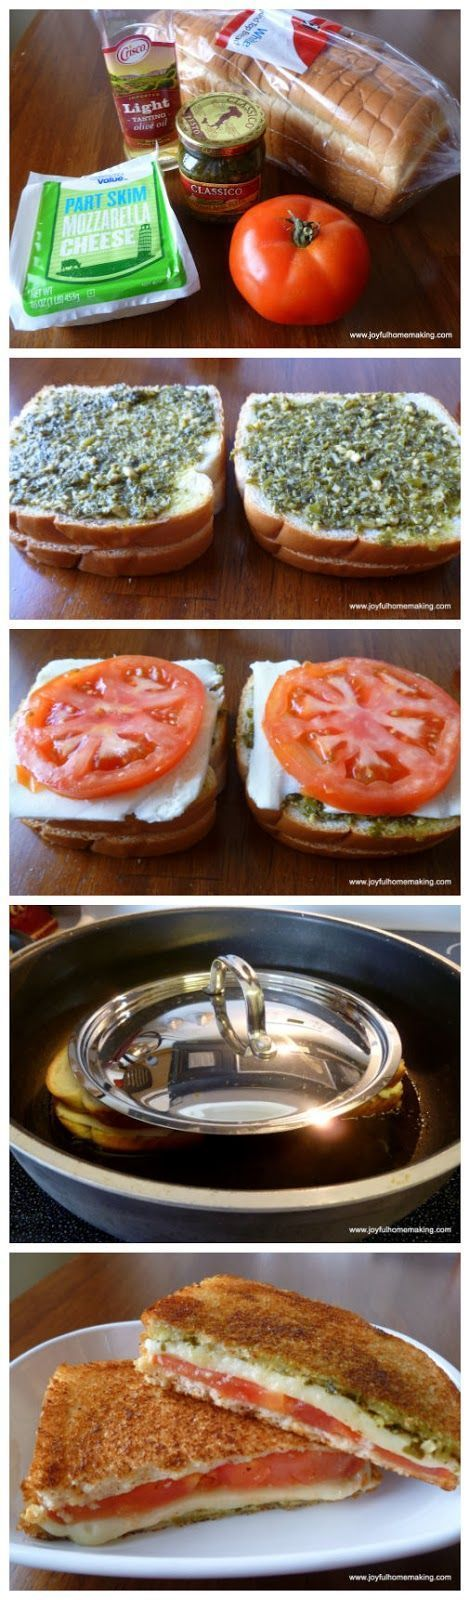 good  and sandwich  tomato of Looks history Grilled pesto shoes cheese